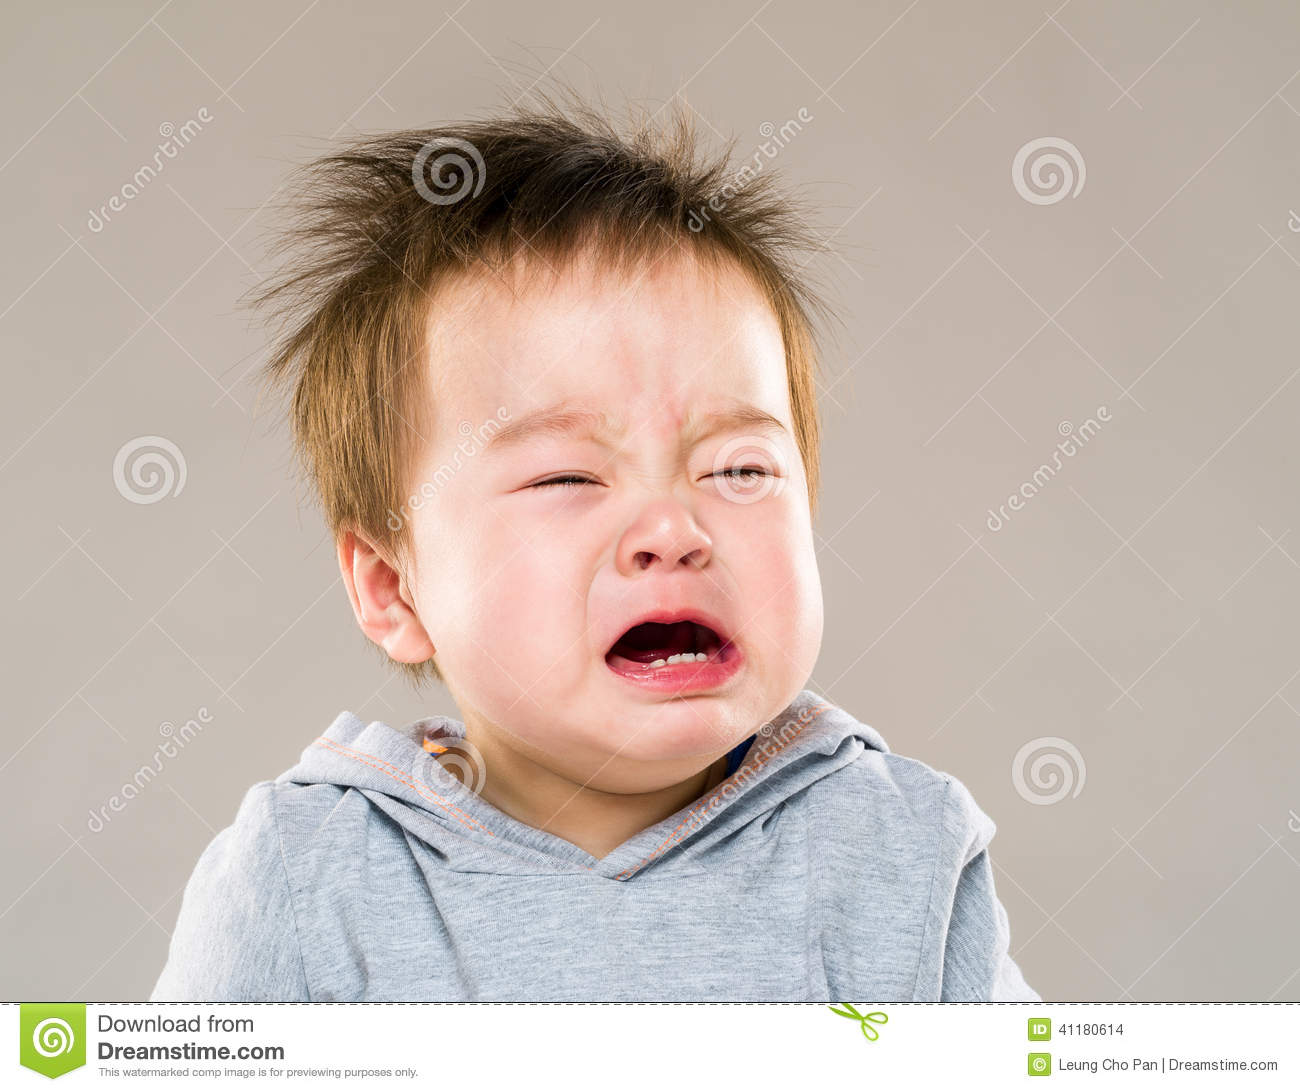 Background Of The Crying Asian Baby Stock Photos, Pictures